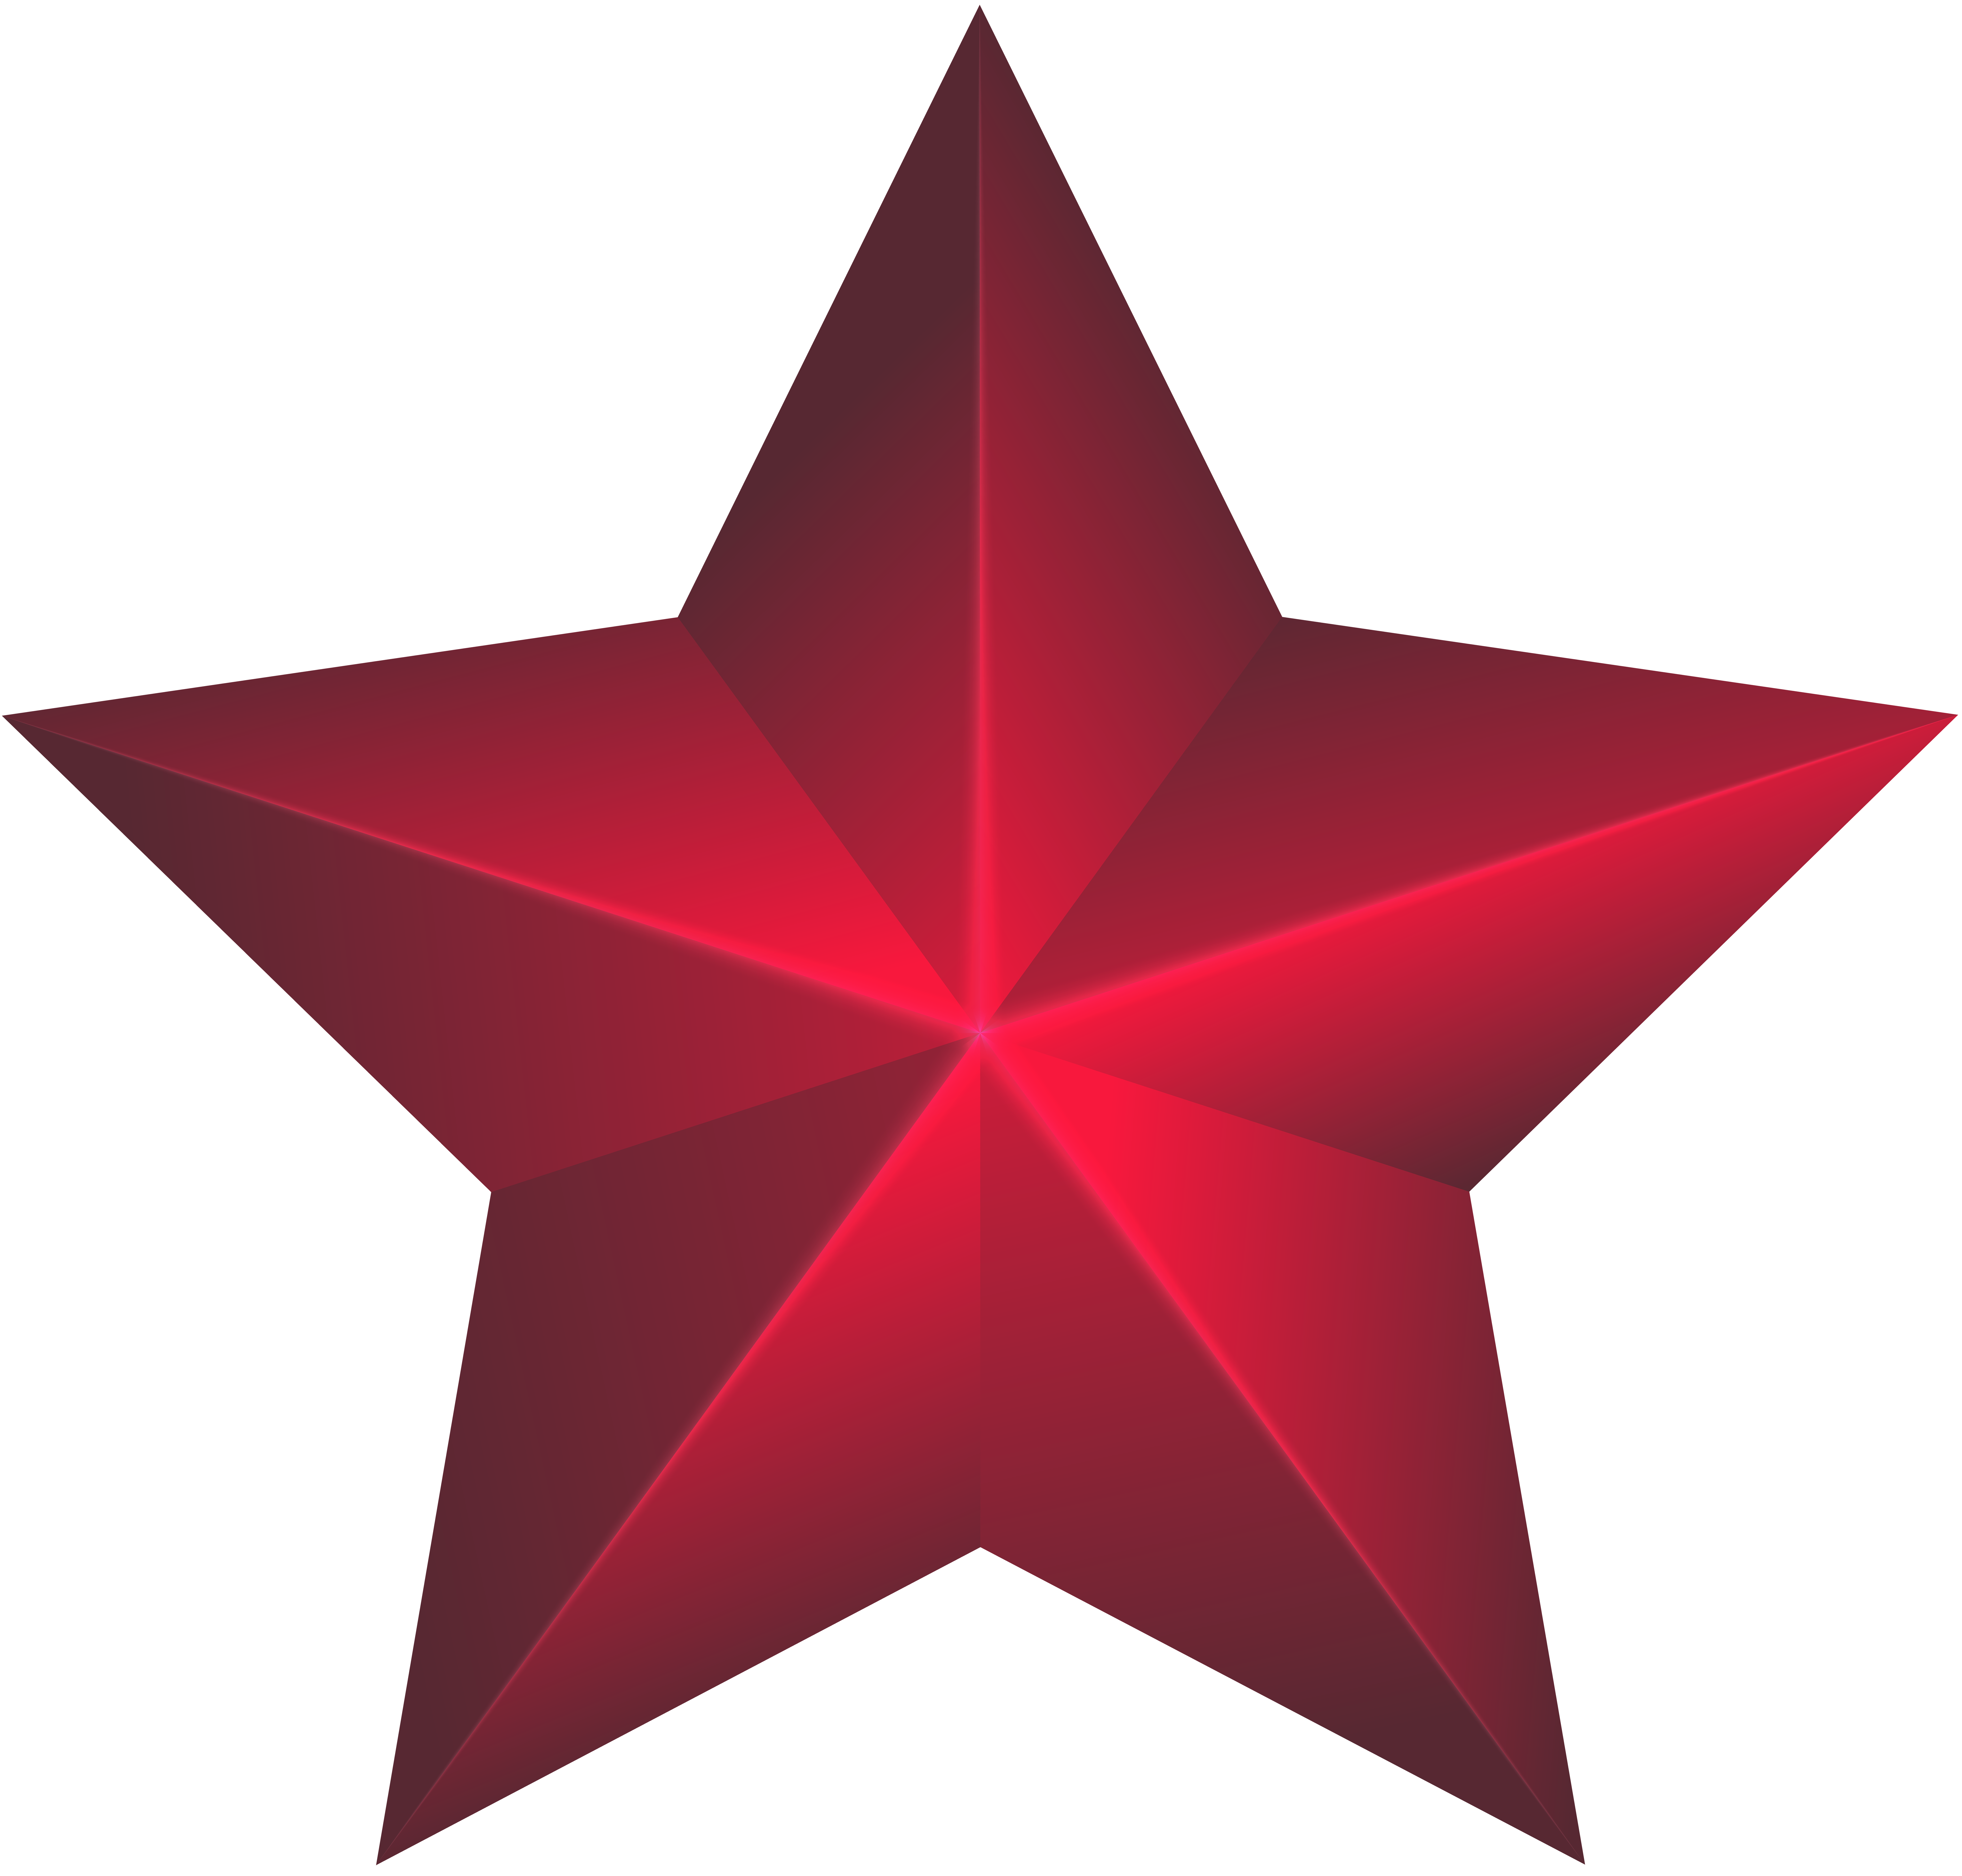 Red Star PNG Clip Art Image.